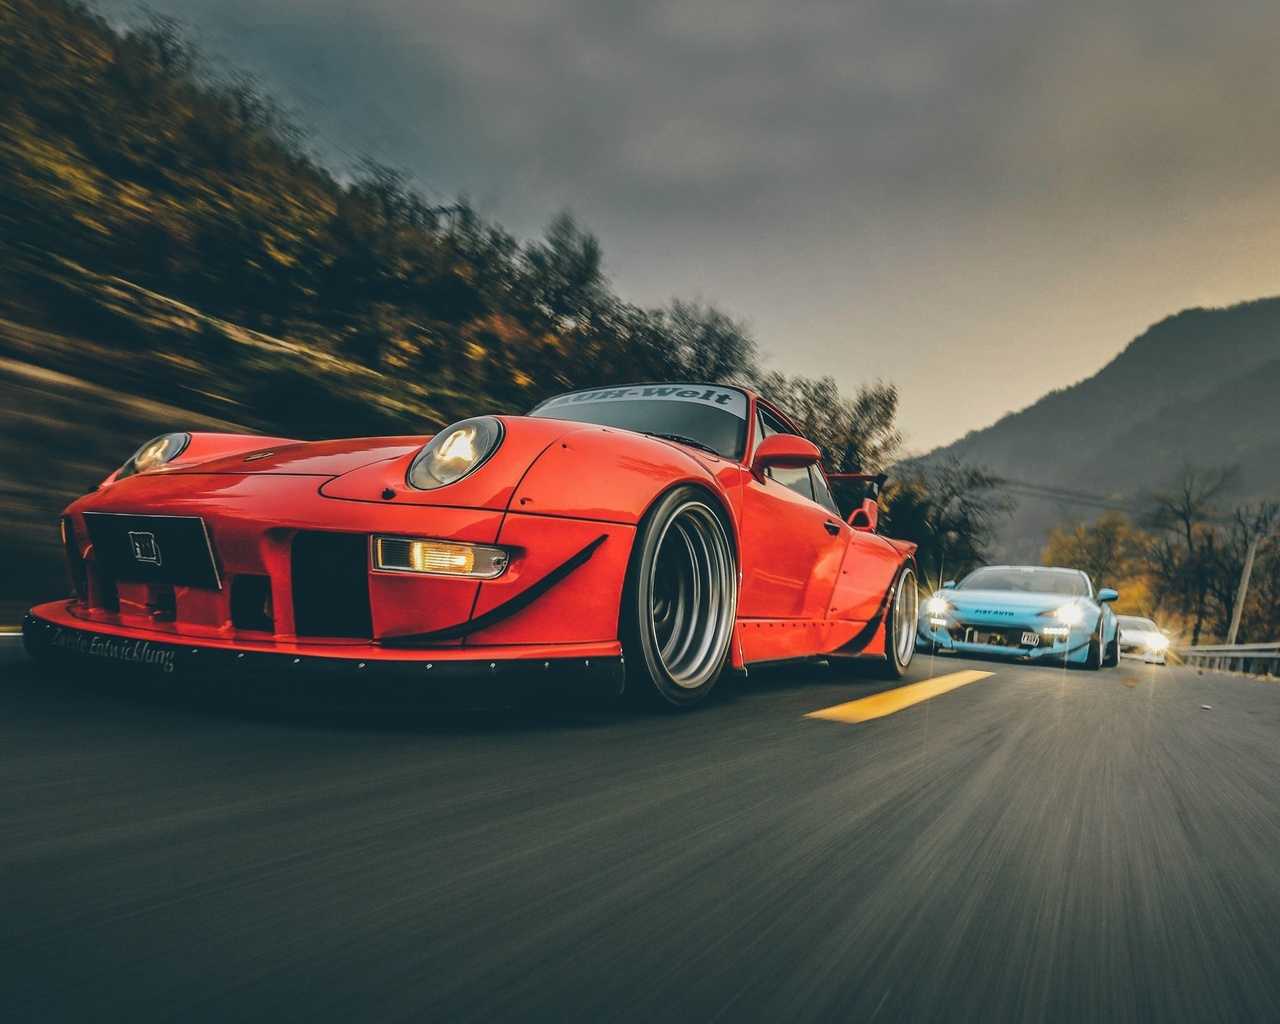 Rwb 4k Wallpaper: 1280x1024 RWB Porsche 911 Turbo 1280x1024 Resolution HD 4k